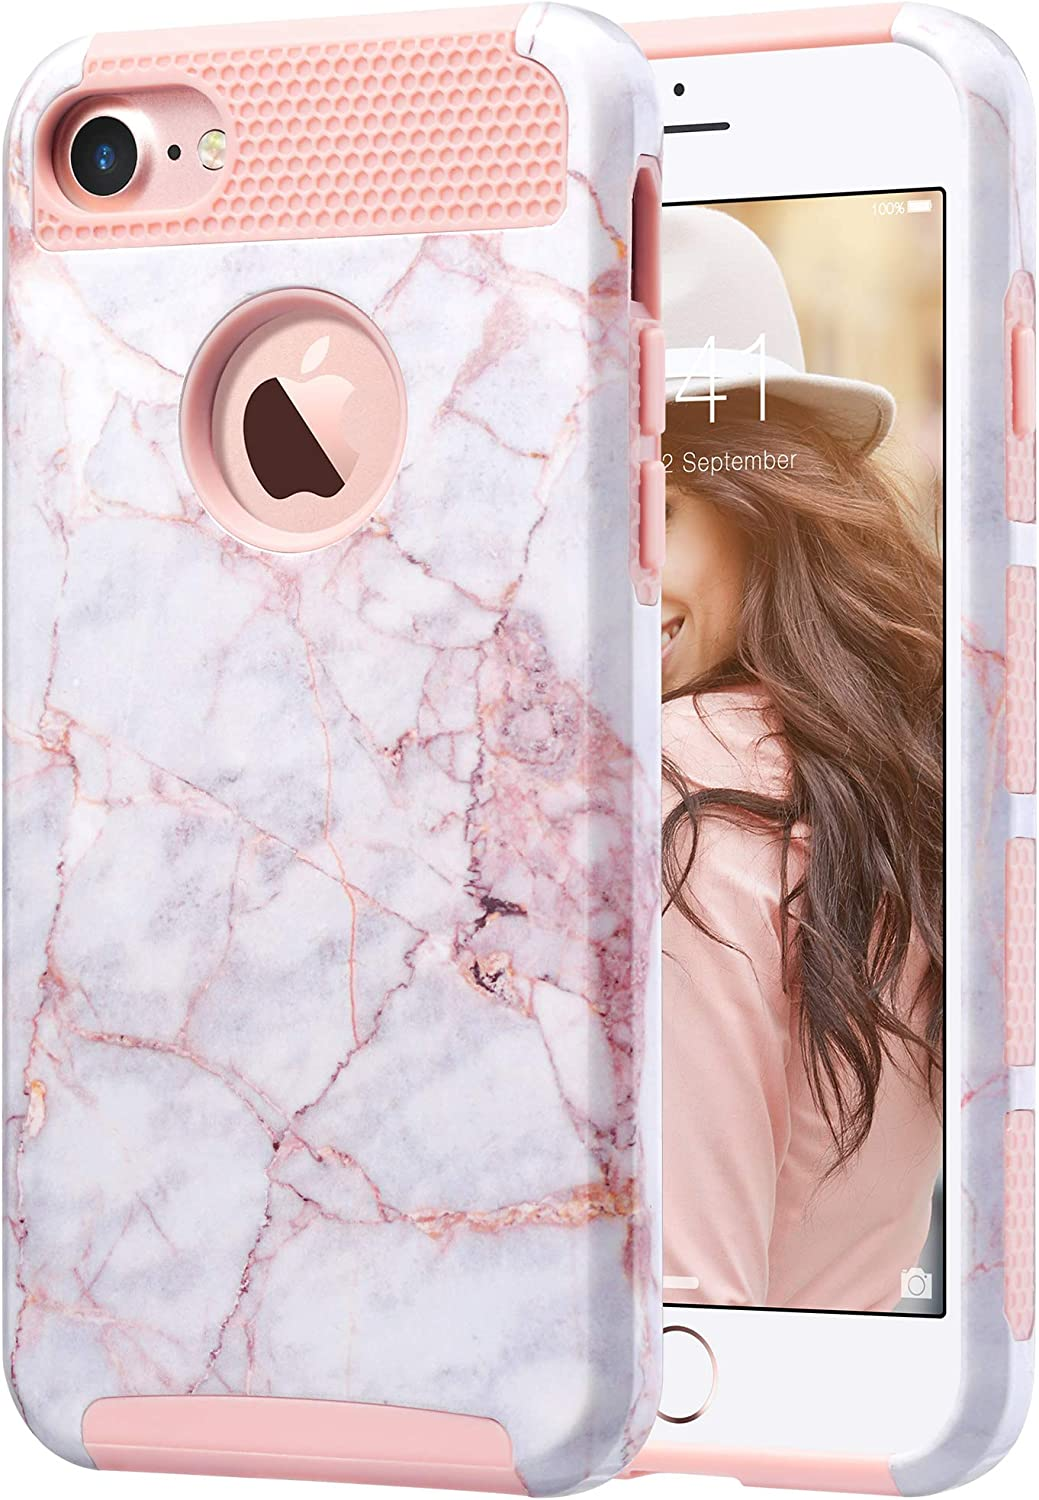 ULAK iPhone 7 Case Marble, Stylish Designed Slim Fit Hybrid Protective Hard Back Cover Shock Absorption TPU Bumper Girly Phone Case for Apple iPhone 7 4.7 inch, Cracked Marble